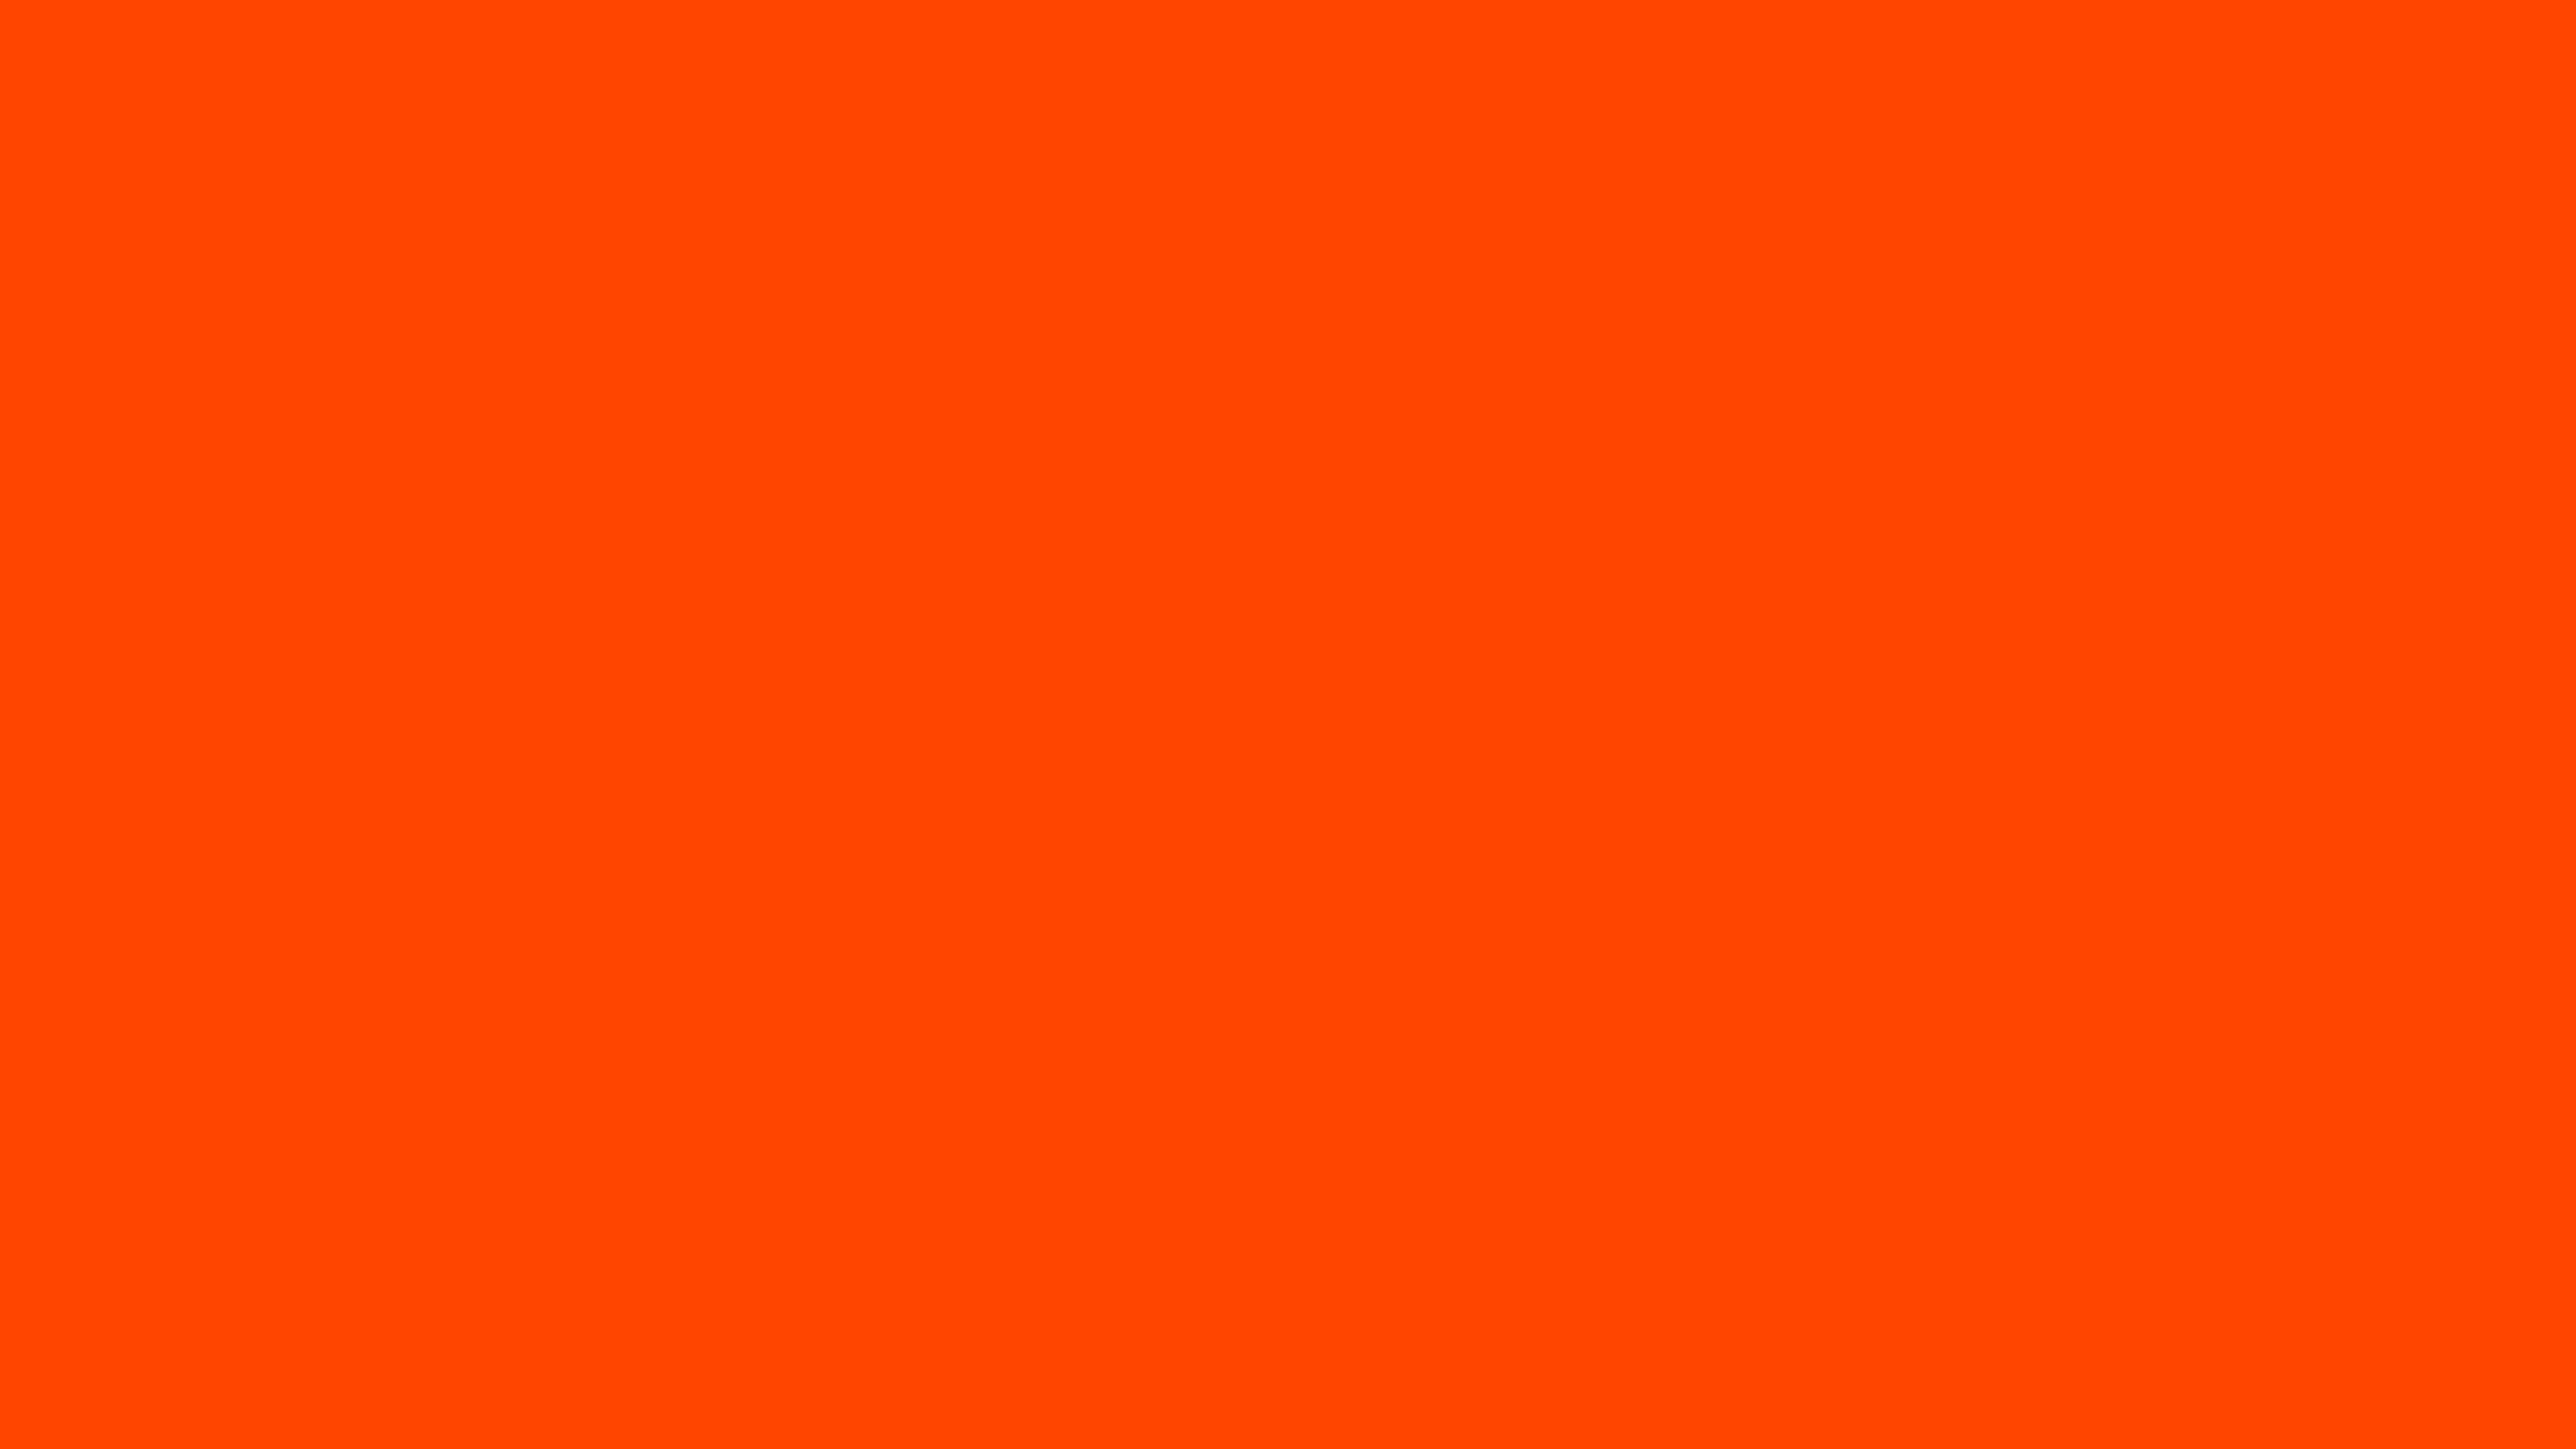 5120x2880 Orange-red Solid Color Background